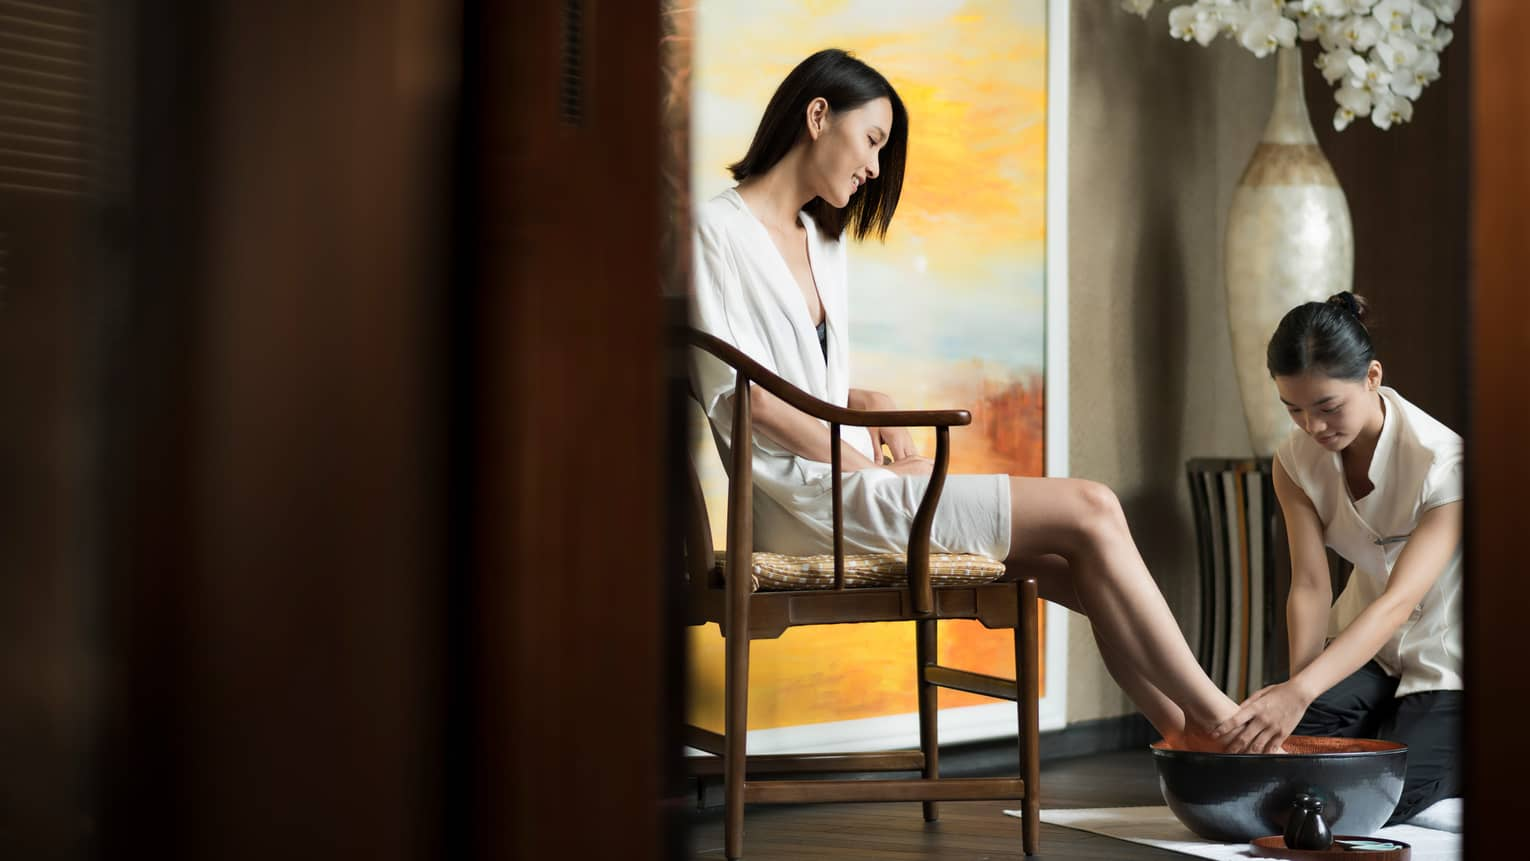 Spa staff rinses woman's feet in bowl as she sits in chair in white robe